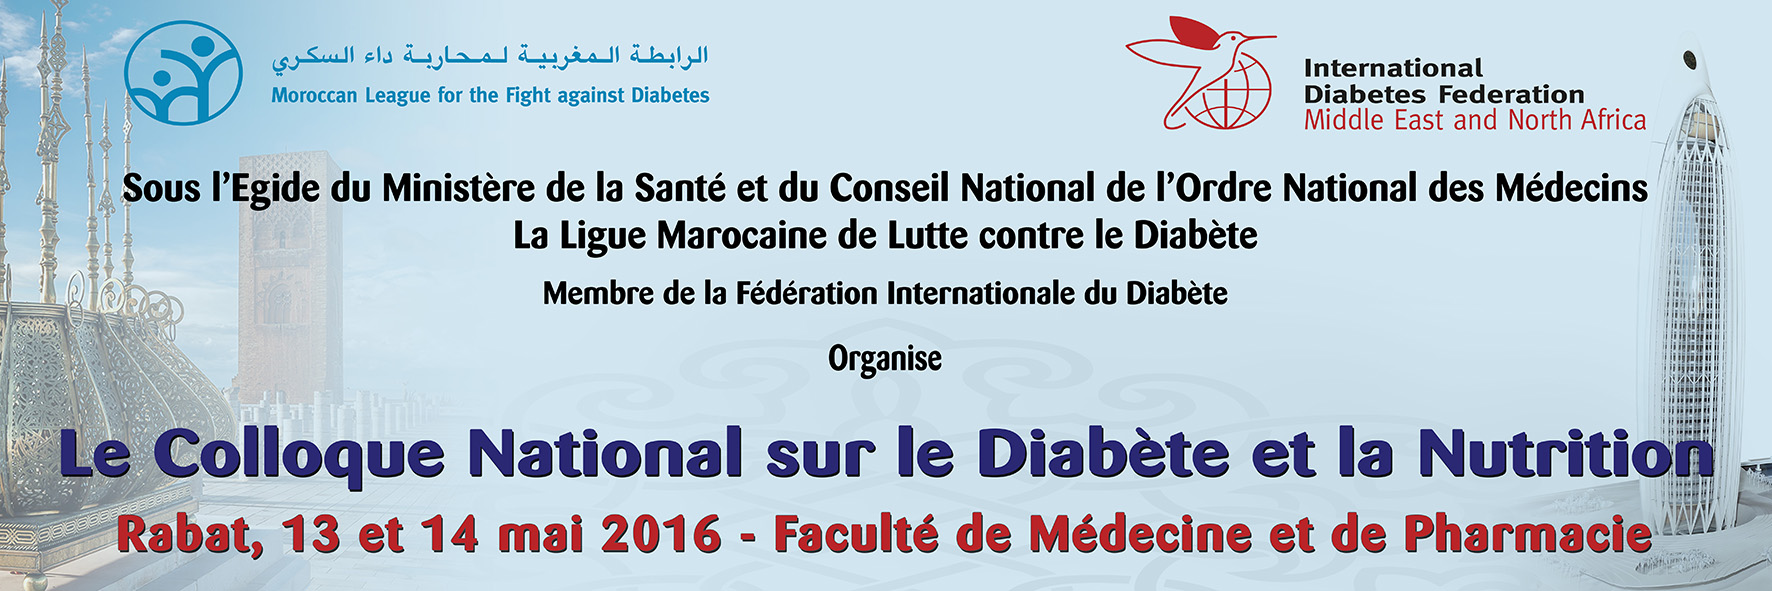 Colloque national 2016